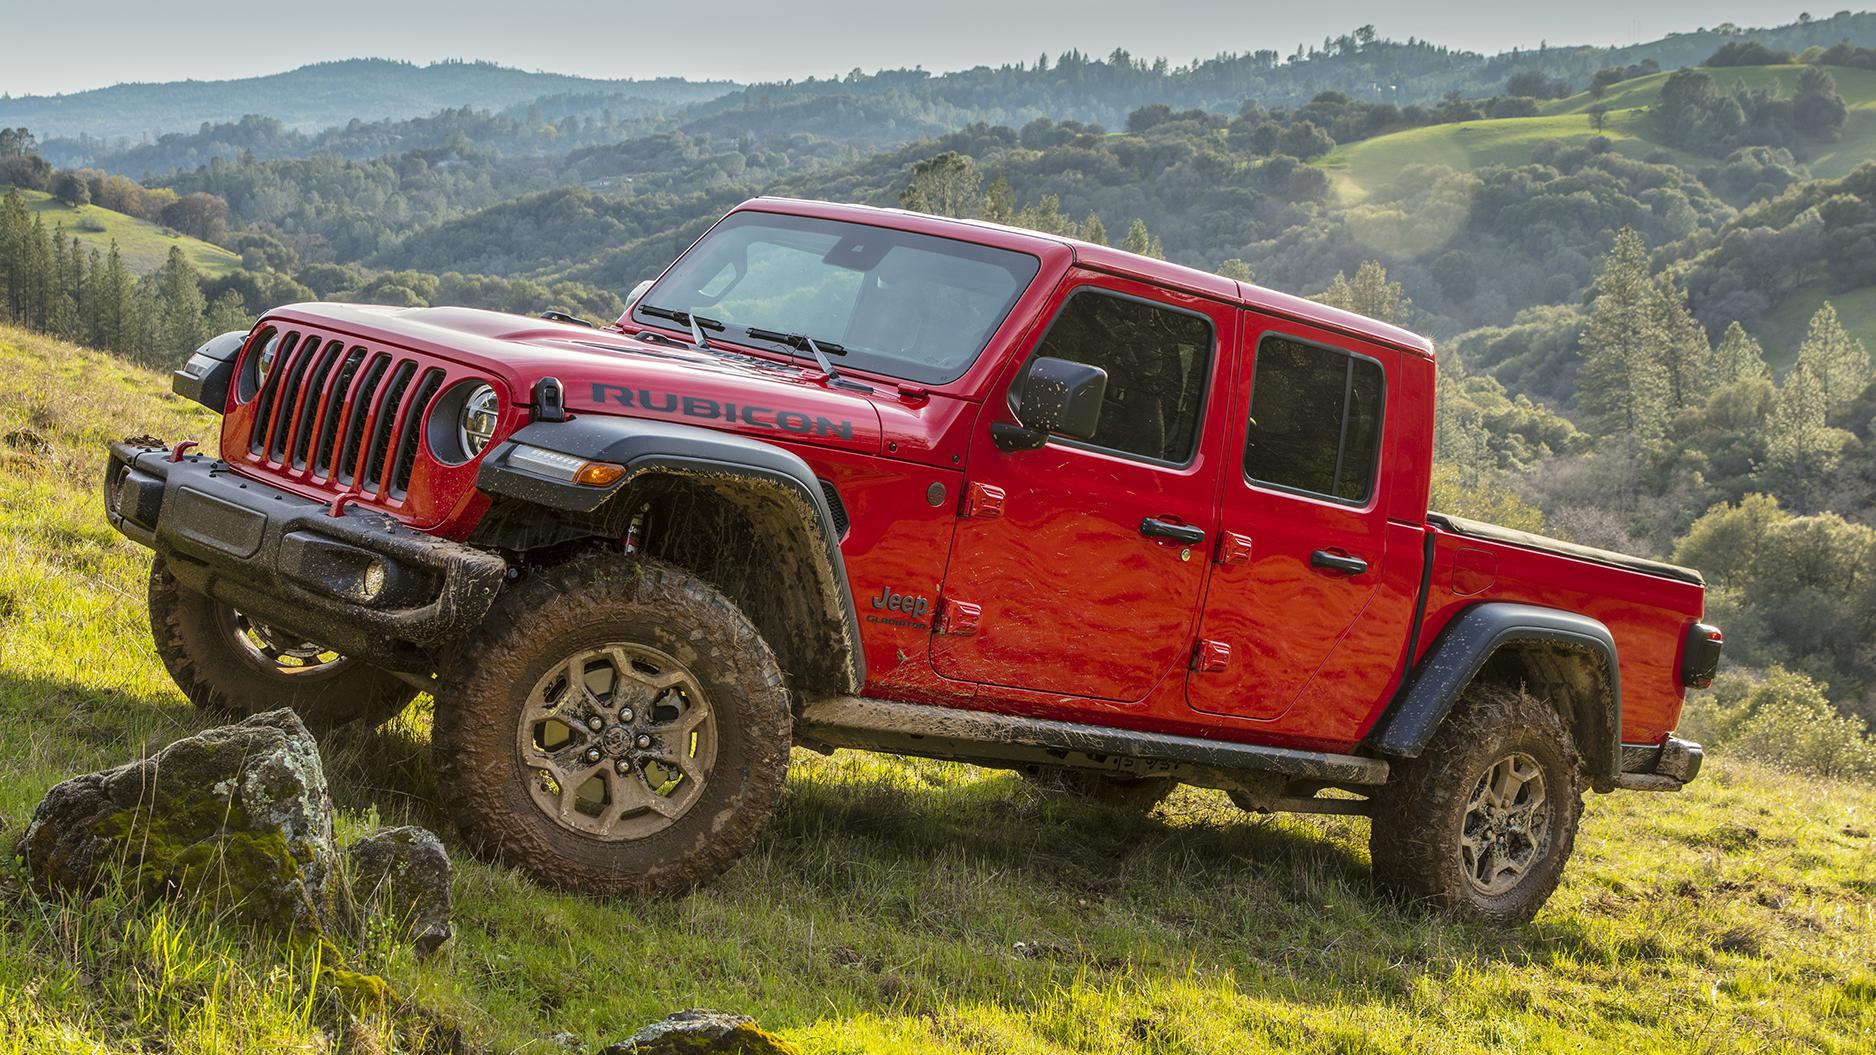 2020 Jeep Gladiator Rubicon: Part truck and mountain goat